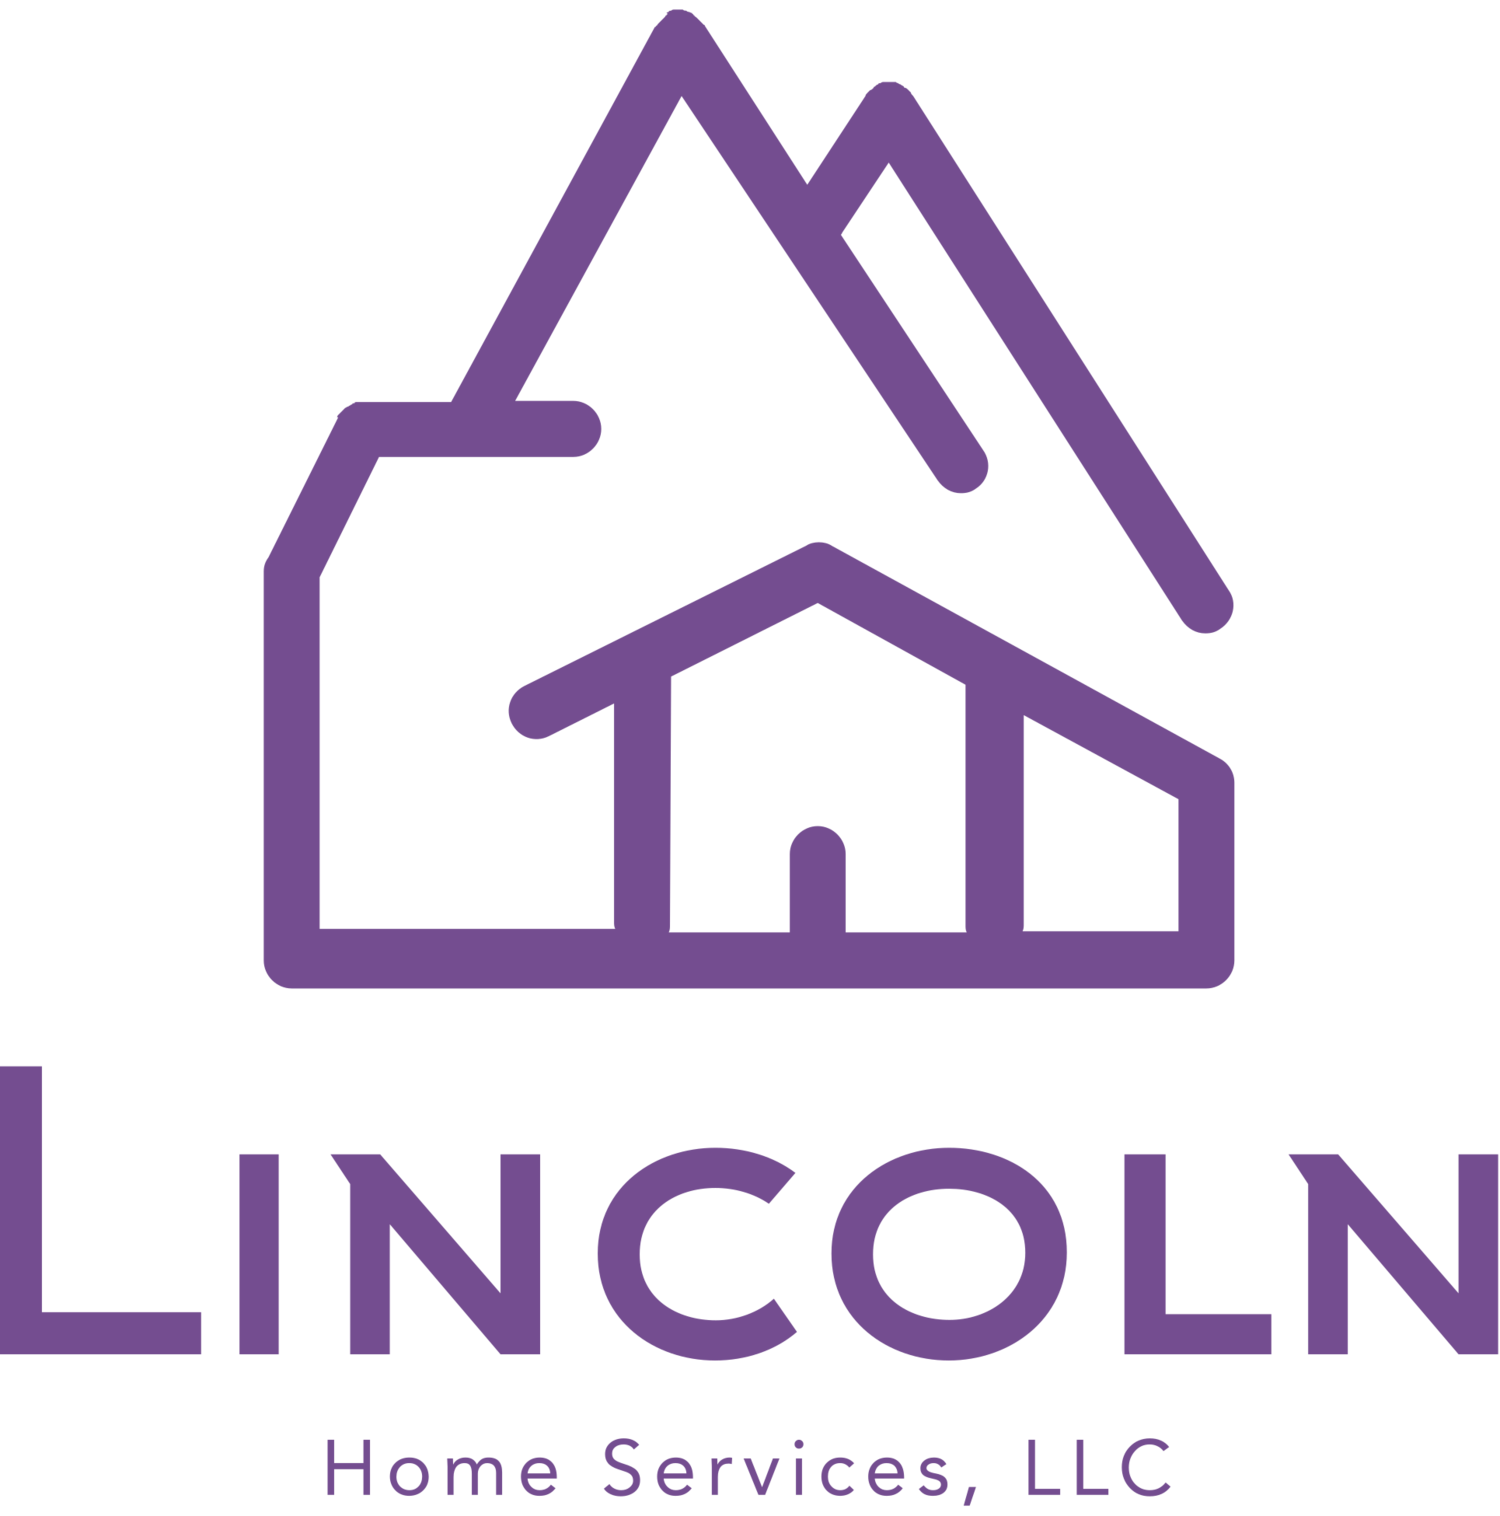 Lincoln Home Services